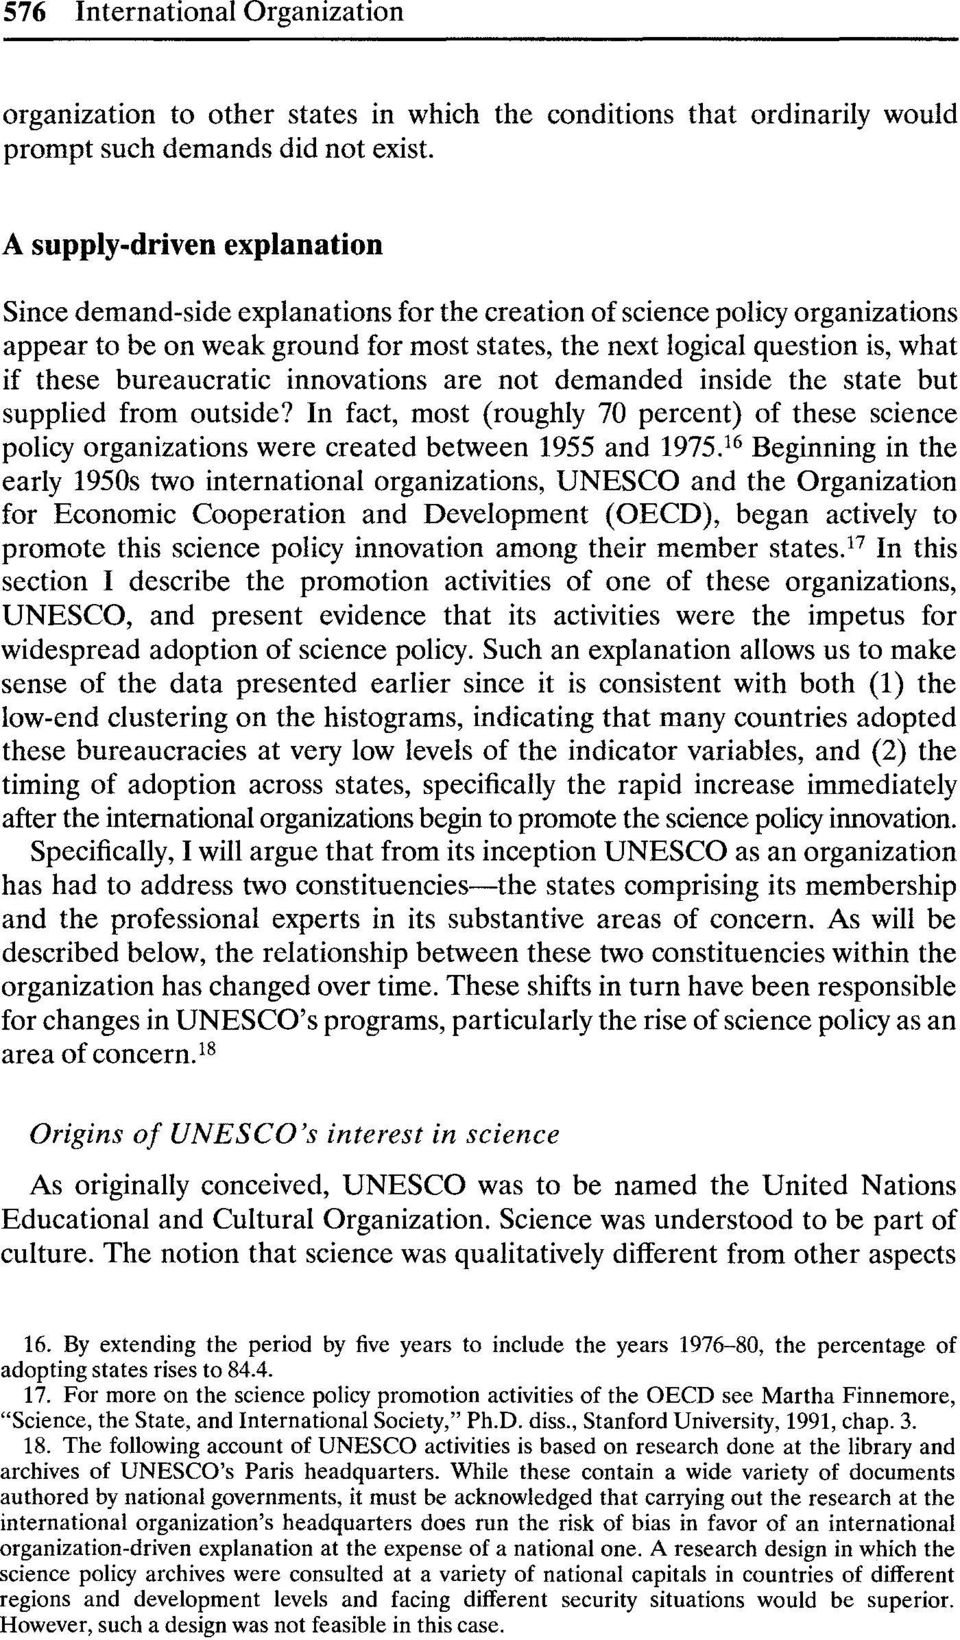 bureaucratic innovations are not demanded inside the state but supplied from outside? In fact, most (roughly 70 percent) of these science policy organizations were created between 1955 and 1975.